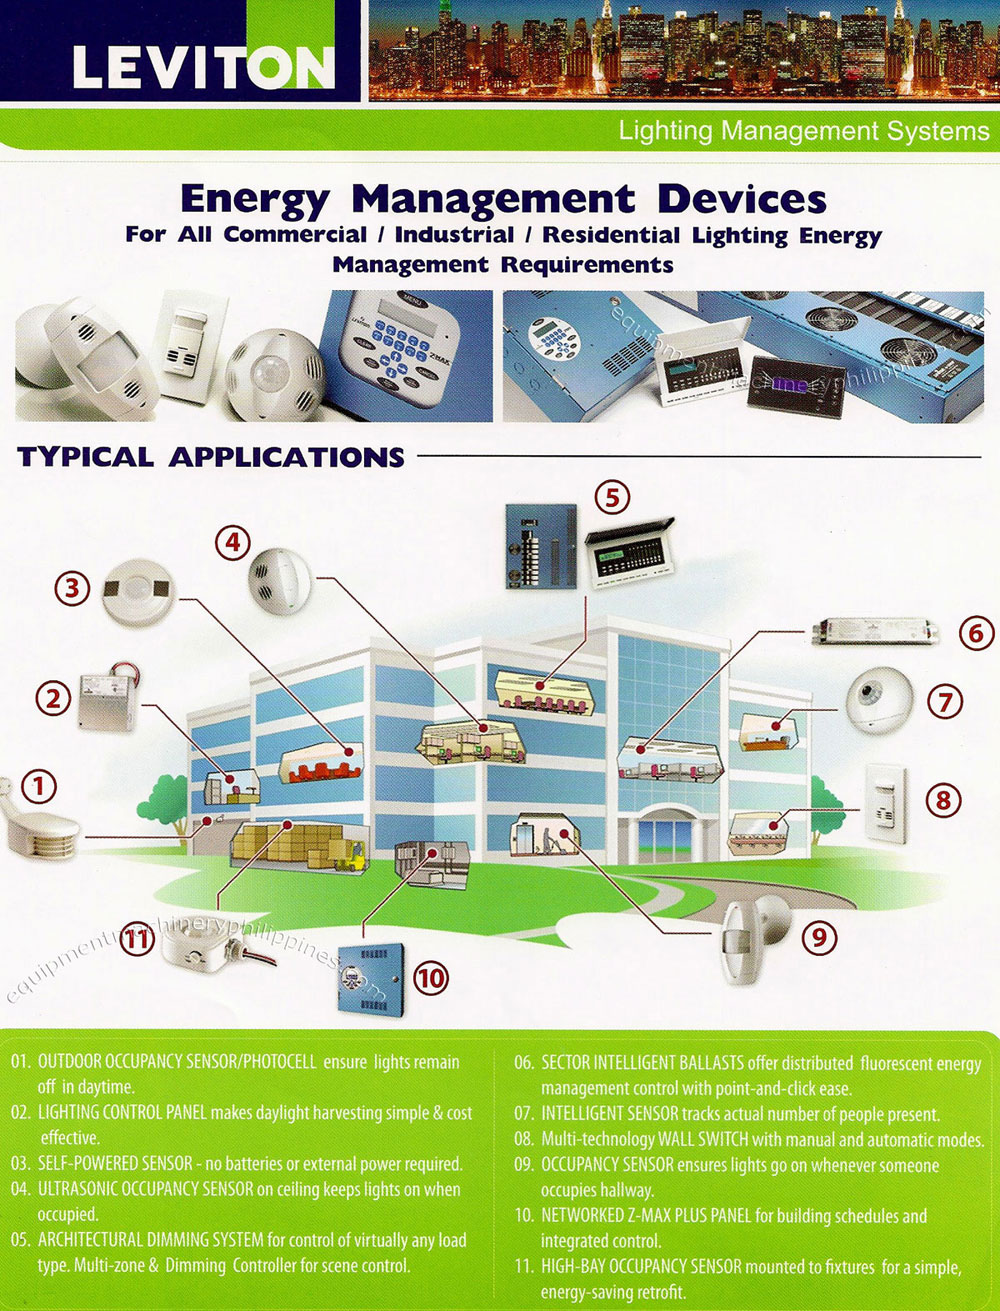 Leviton Energy Management Devices for Commercial, Industrial ...